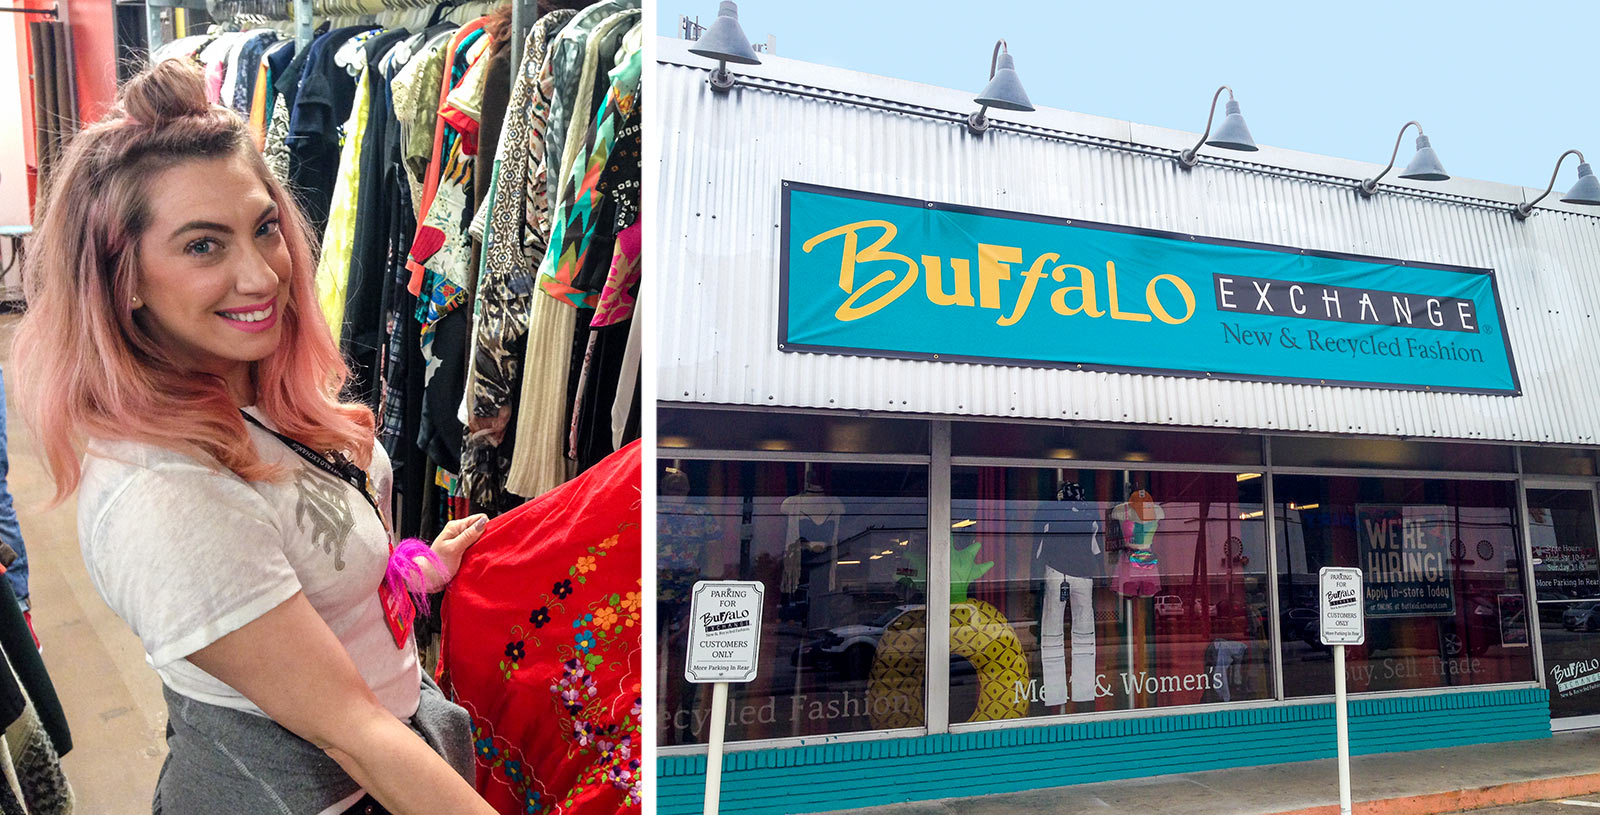 Cashier opening in houston tx buffalo exchange new for Fashion jobs hamburg